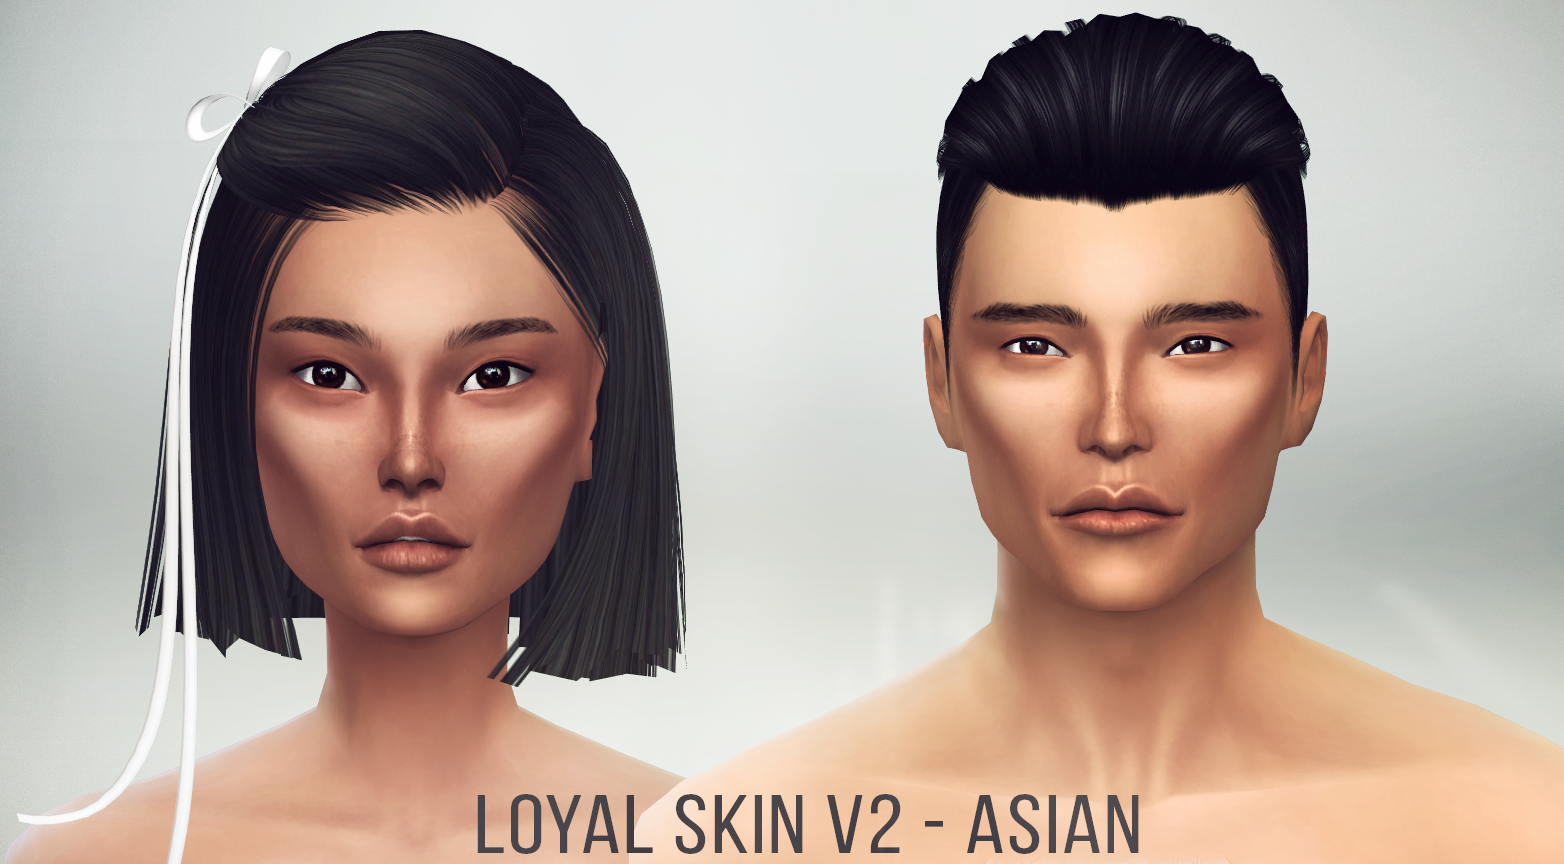 Loyal Skin V2 Asian at S4 Models